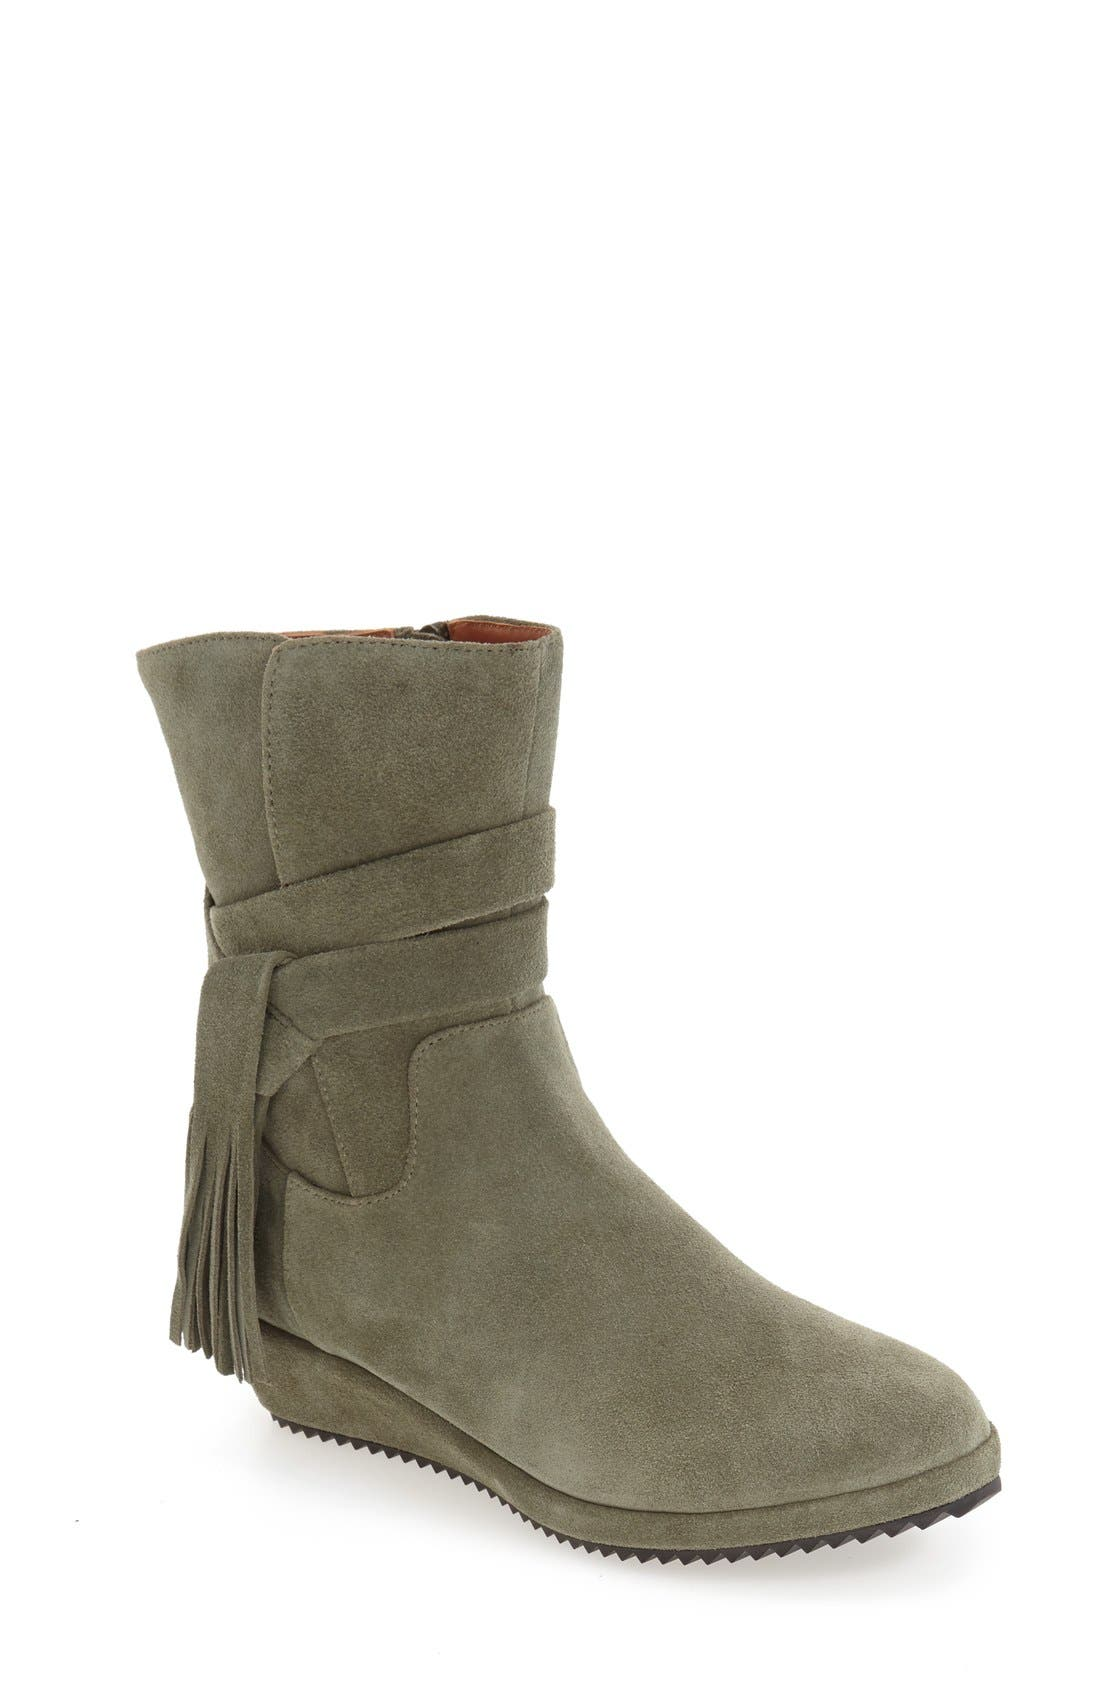 'Bernyce' Boot,                         Main,                         color, Olive Suede Leather